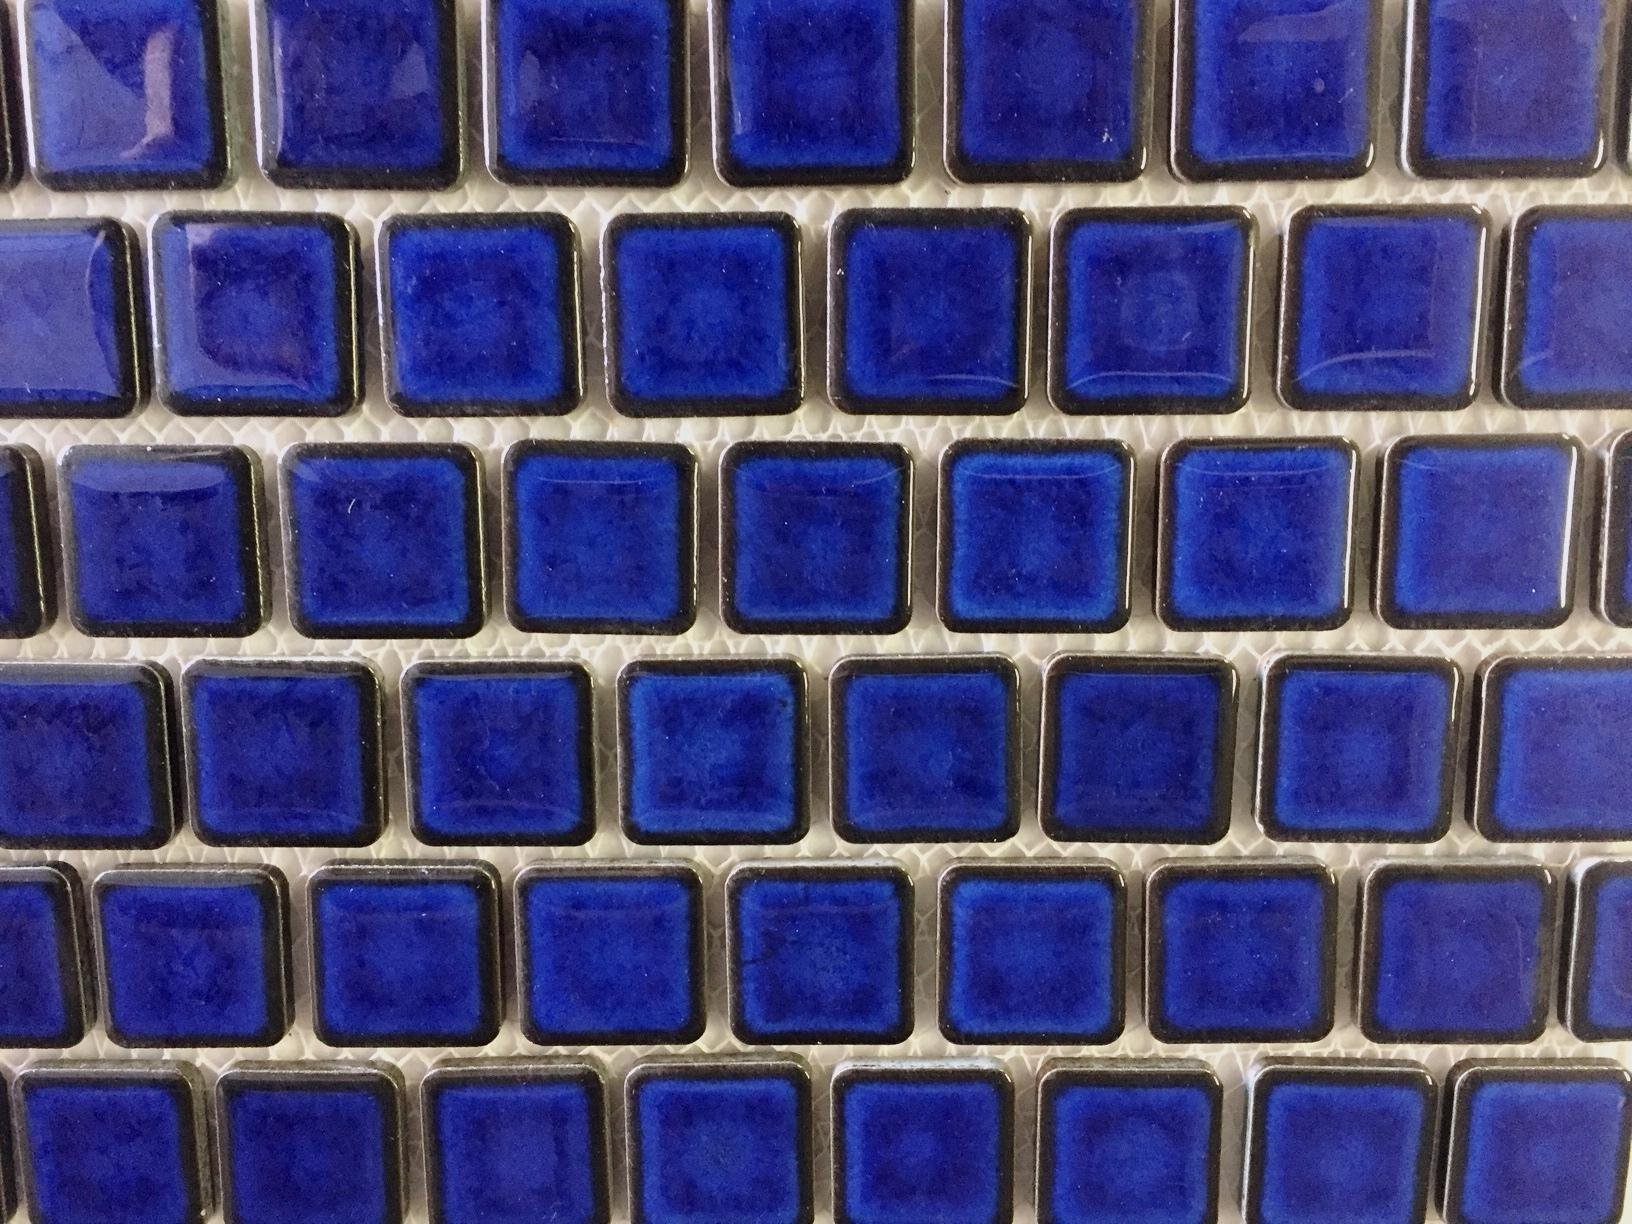 Vogue Premium Quality 1'' x 1'' Cobalt Blue Porcelain Mosaic Tile on Mesh on 12x12 sheet, Designed in Italy (PACK OF 3 SHEETS) by Marble 'n things